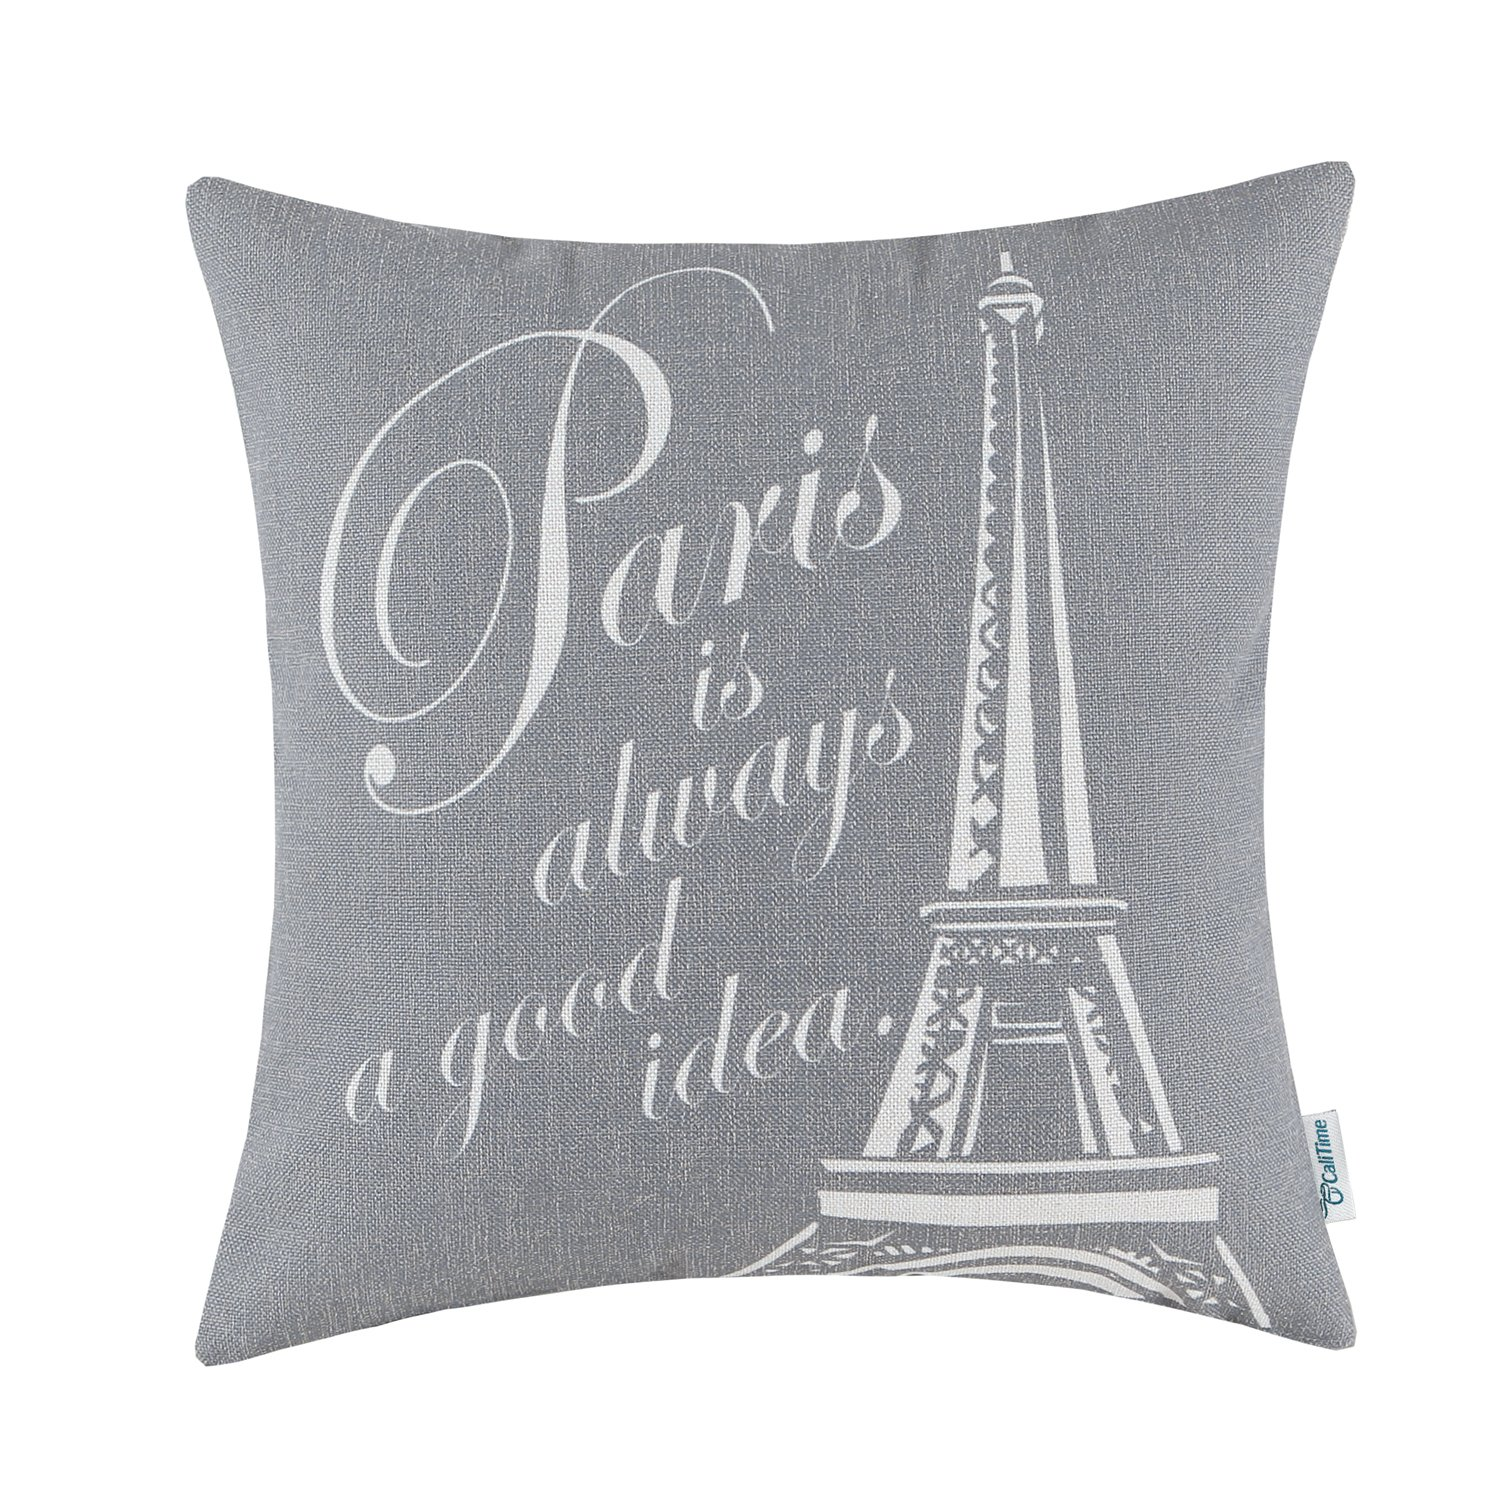 CaliTime Canvas Throw Pillow Cover Case for Couch Sofa Home Decoration Famous Paris Eiffel Tower 18 X 18 inches Medium Grey